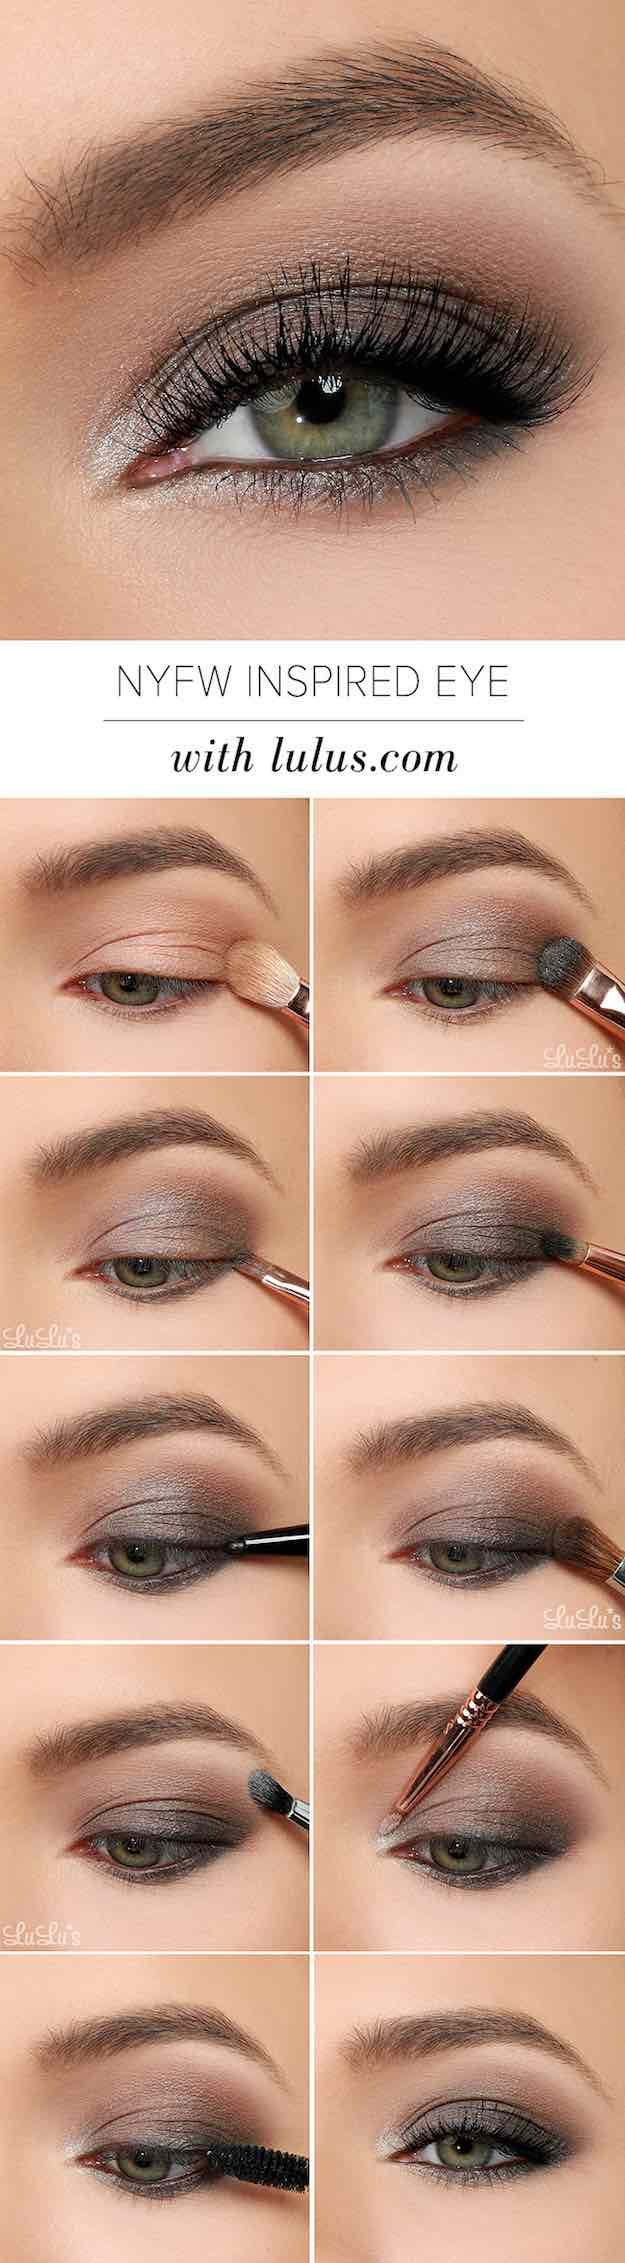 50 perfect makeup tutorials for green eyes | green eyes makeup